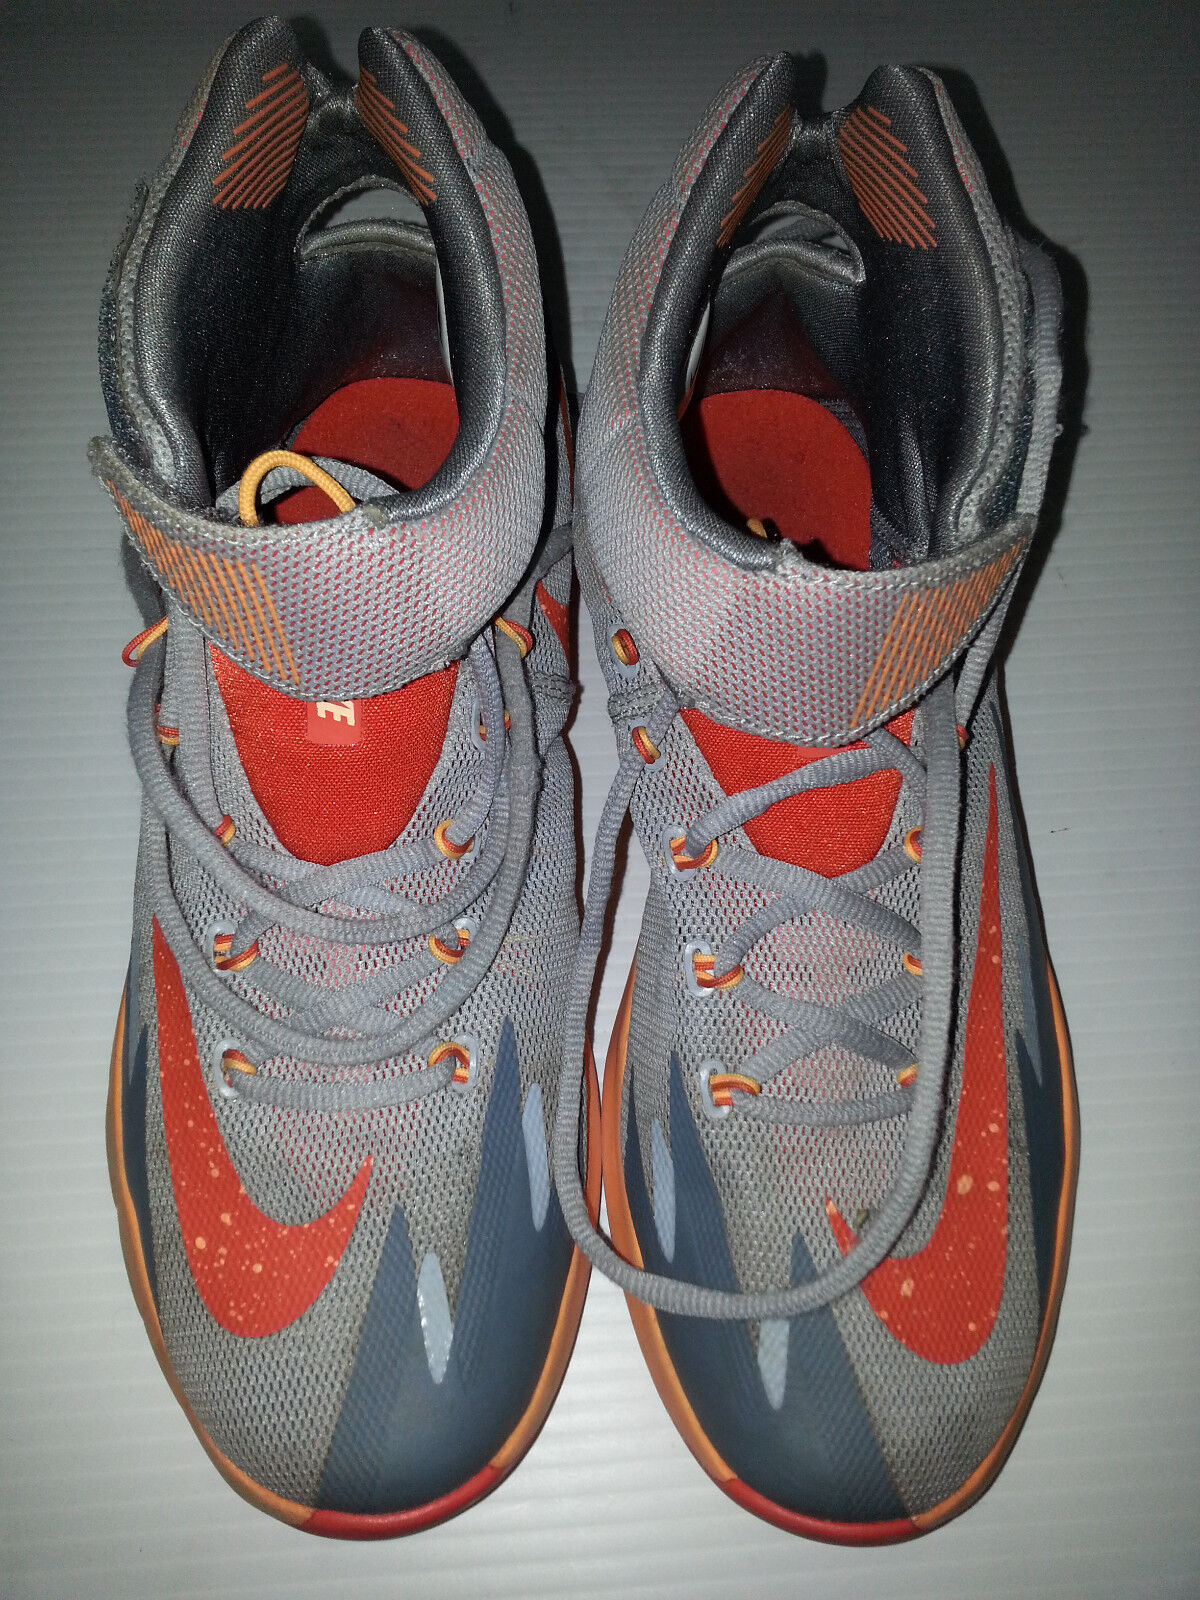 KEVIN DURANT NBA Nike 2018 Mens Sneakers Shoes Size 8 Gray Orange